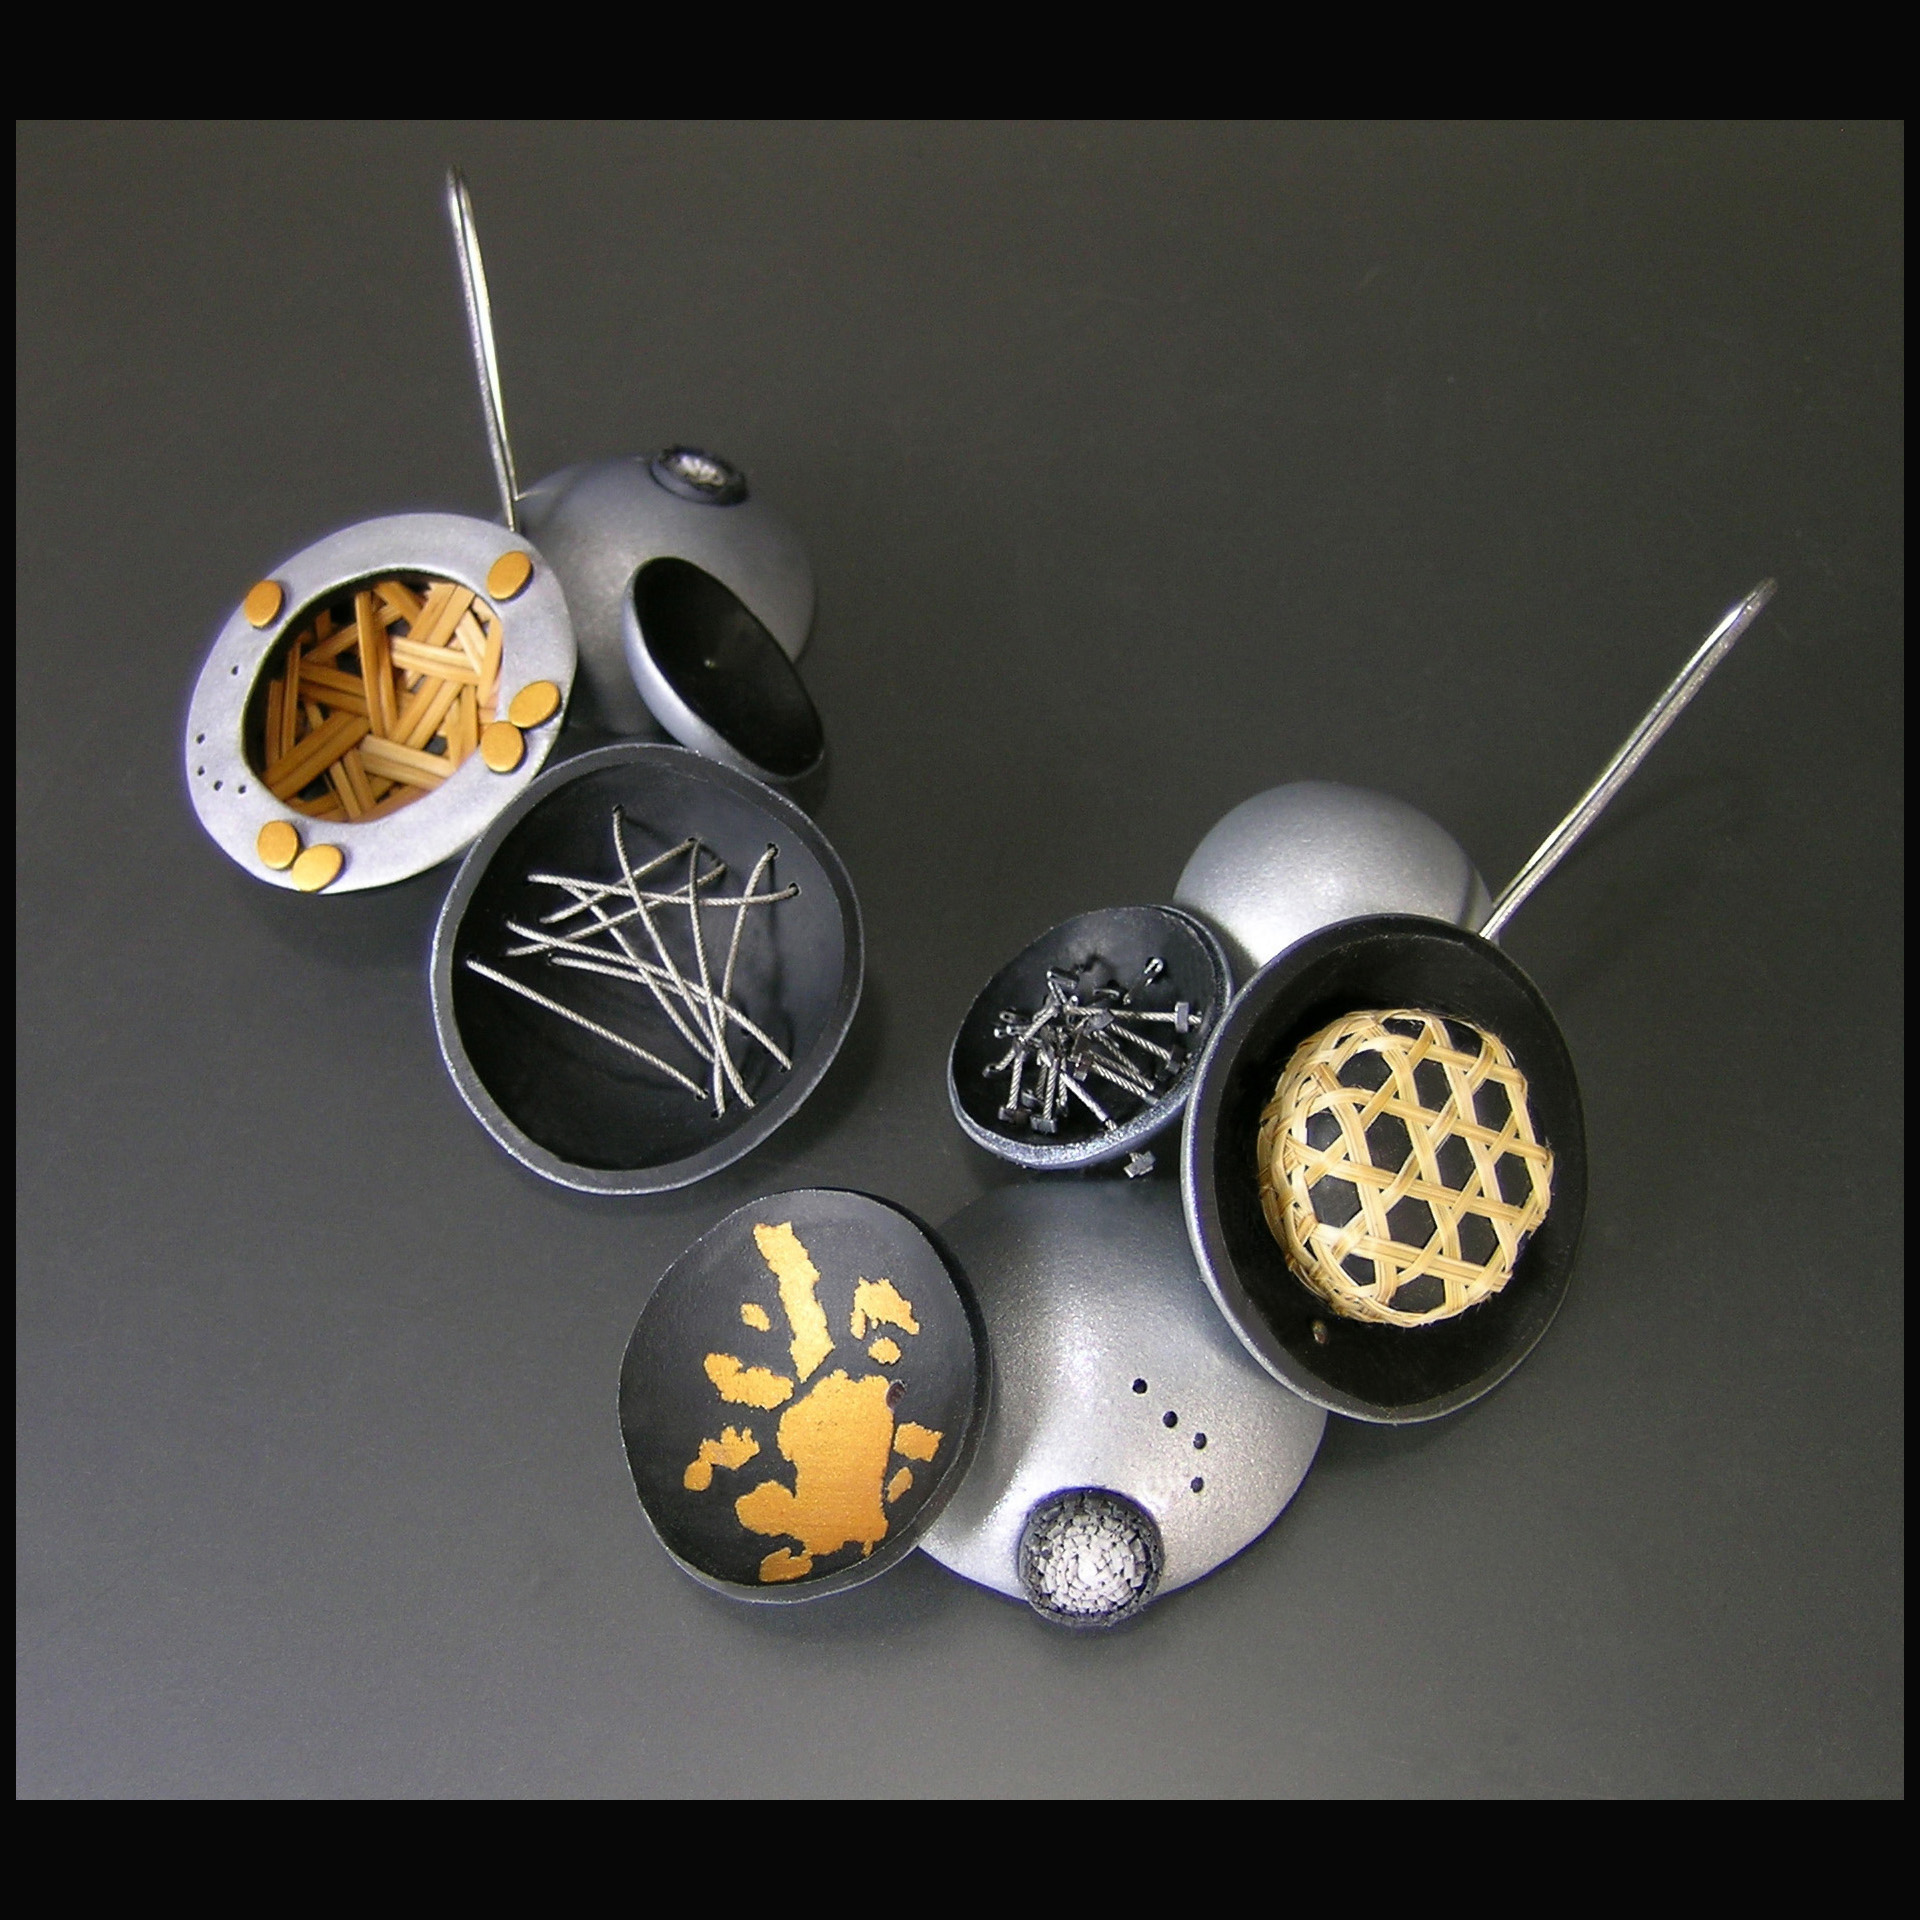 Polymer clay: hand-forming, layering, slicing/splitting, carving.